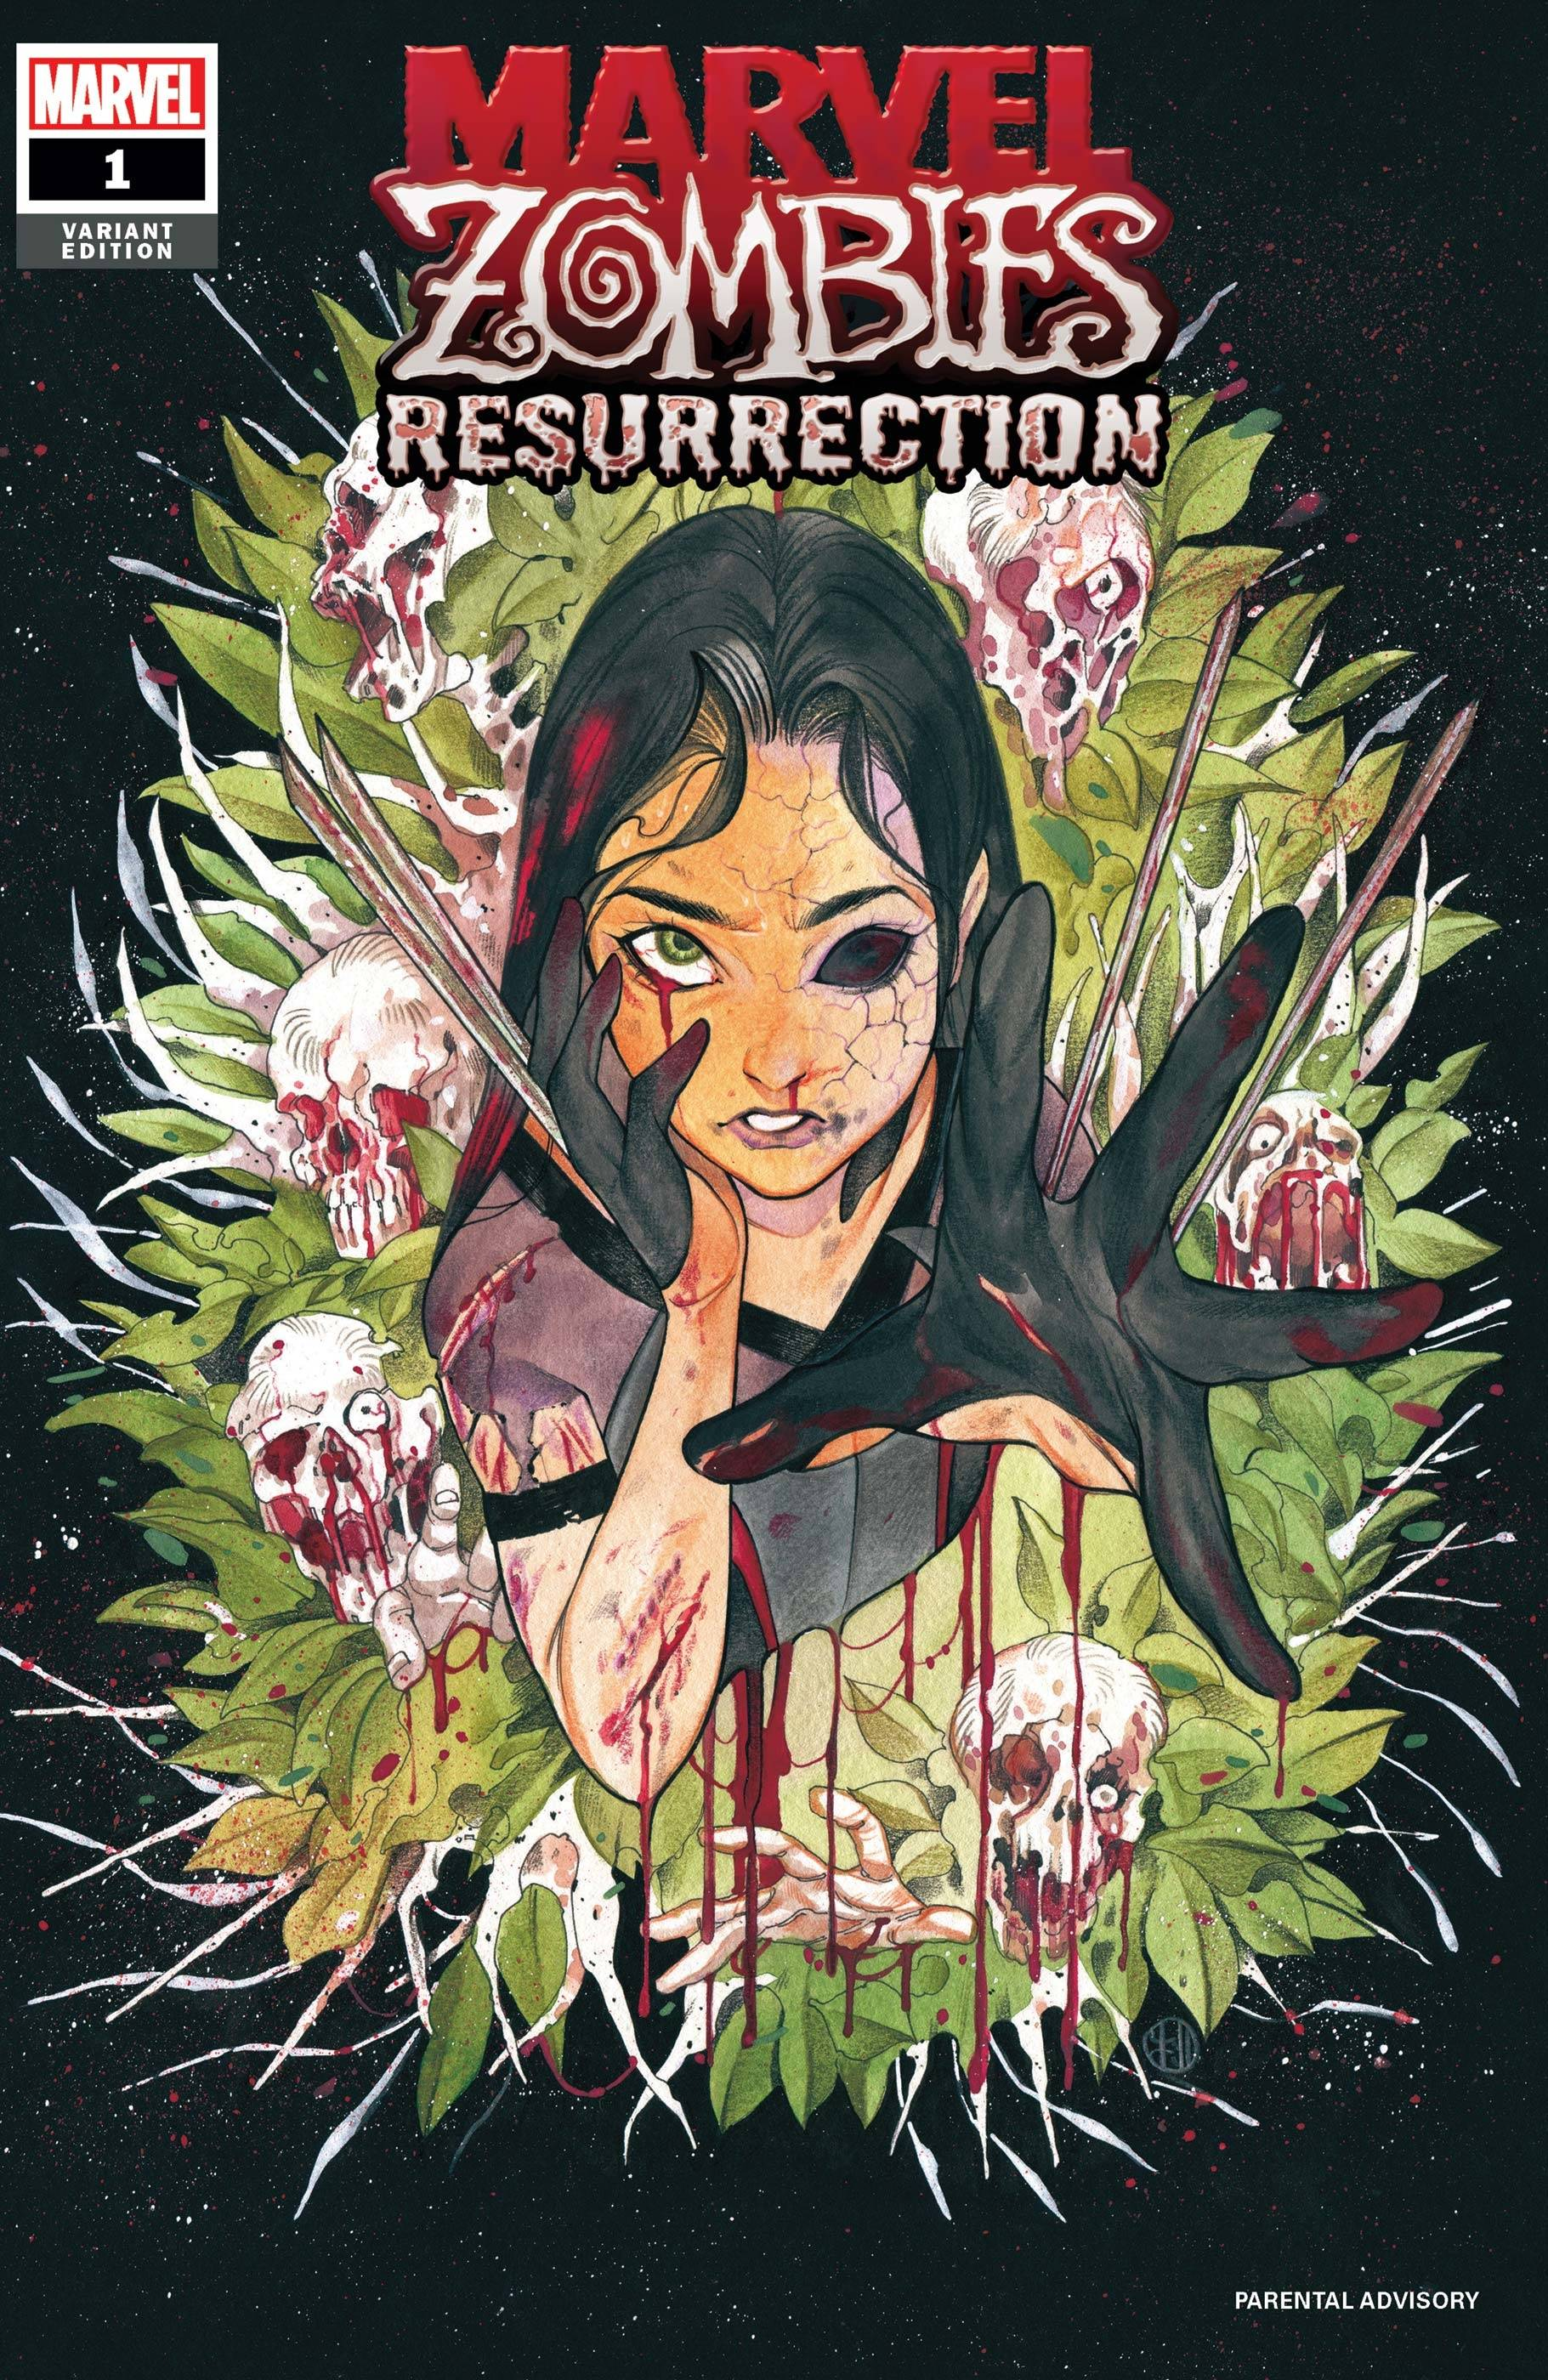 MARVEL ZOMBIES RESURRECTION #1 (OF 4) MOMOKO VAR